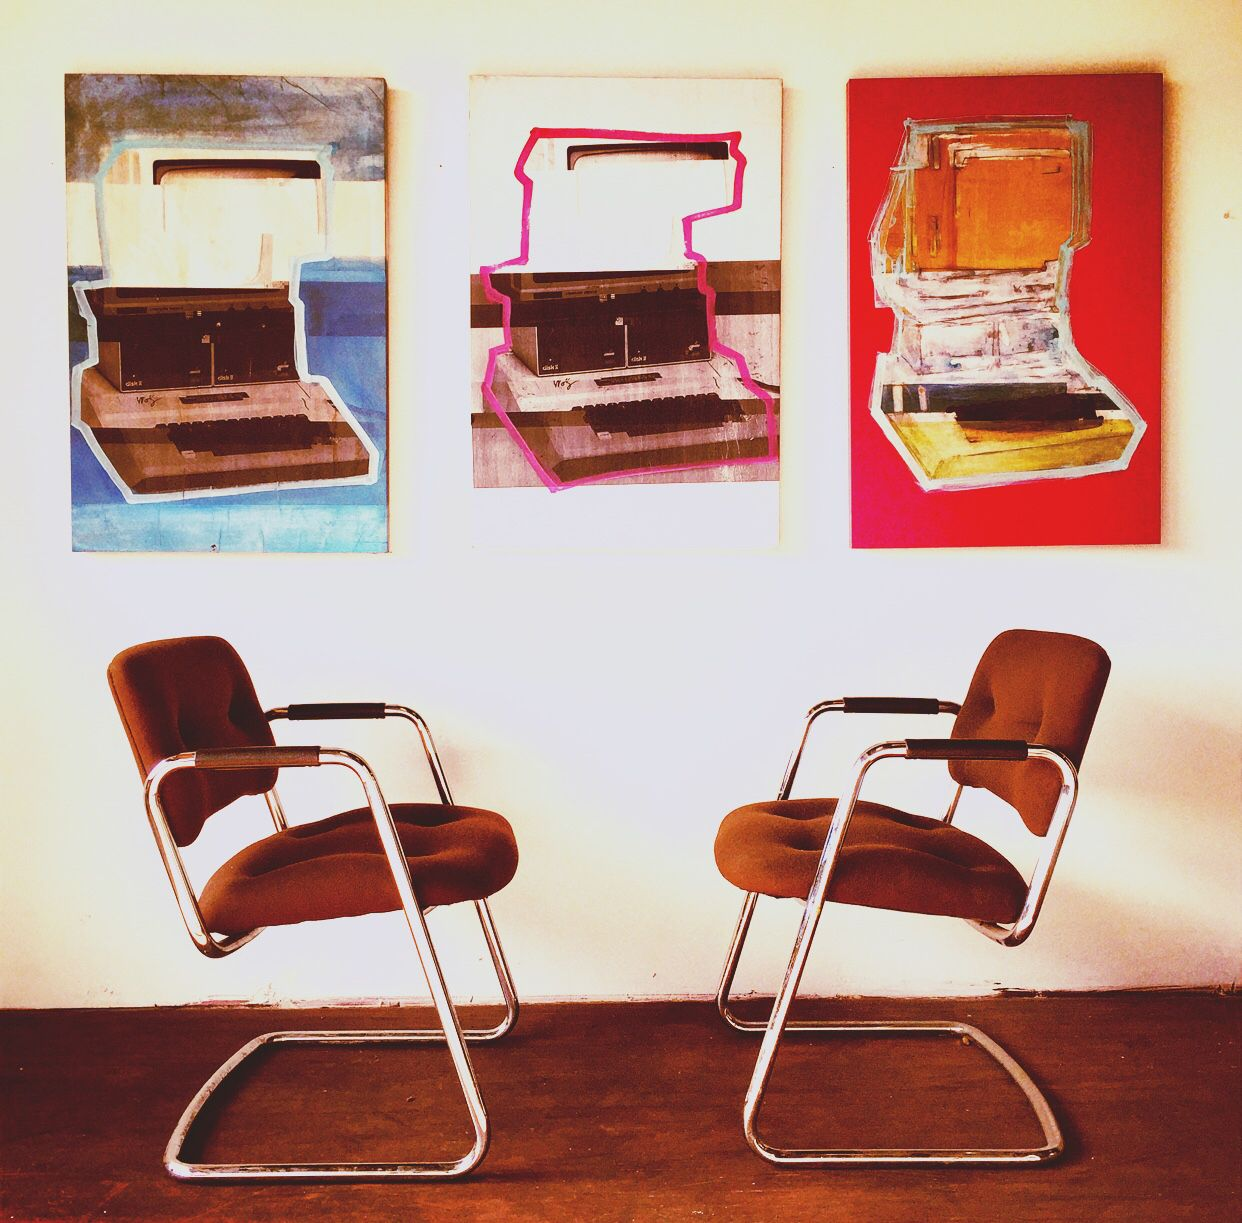 Steelcase Chrome Cantilever Chairs (6) 125 www.facebook